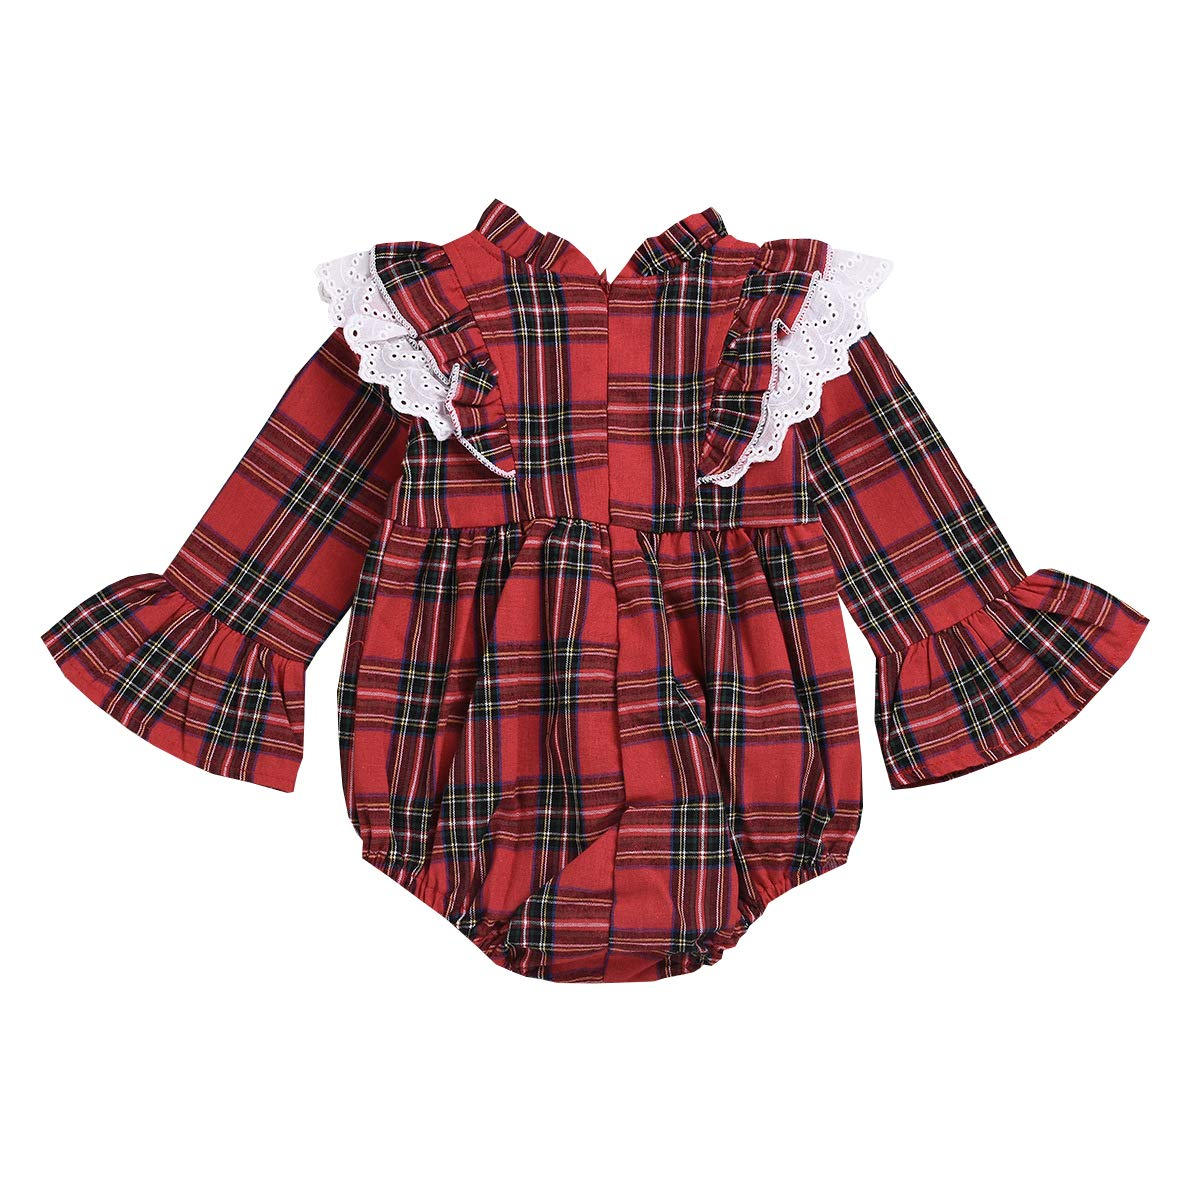 Fairy Baby Toddler Baby Girls Outfits Flare Sleeve Plaid Bodysuit Onesie Ruffle Lace Romper